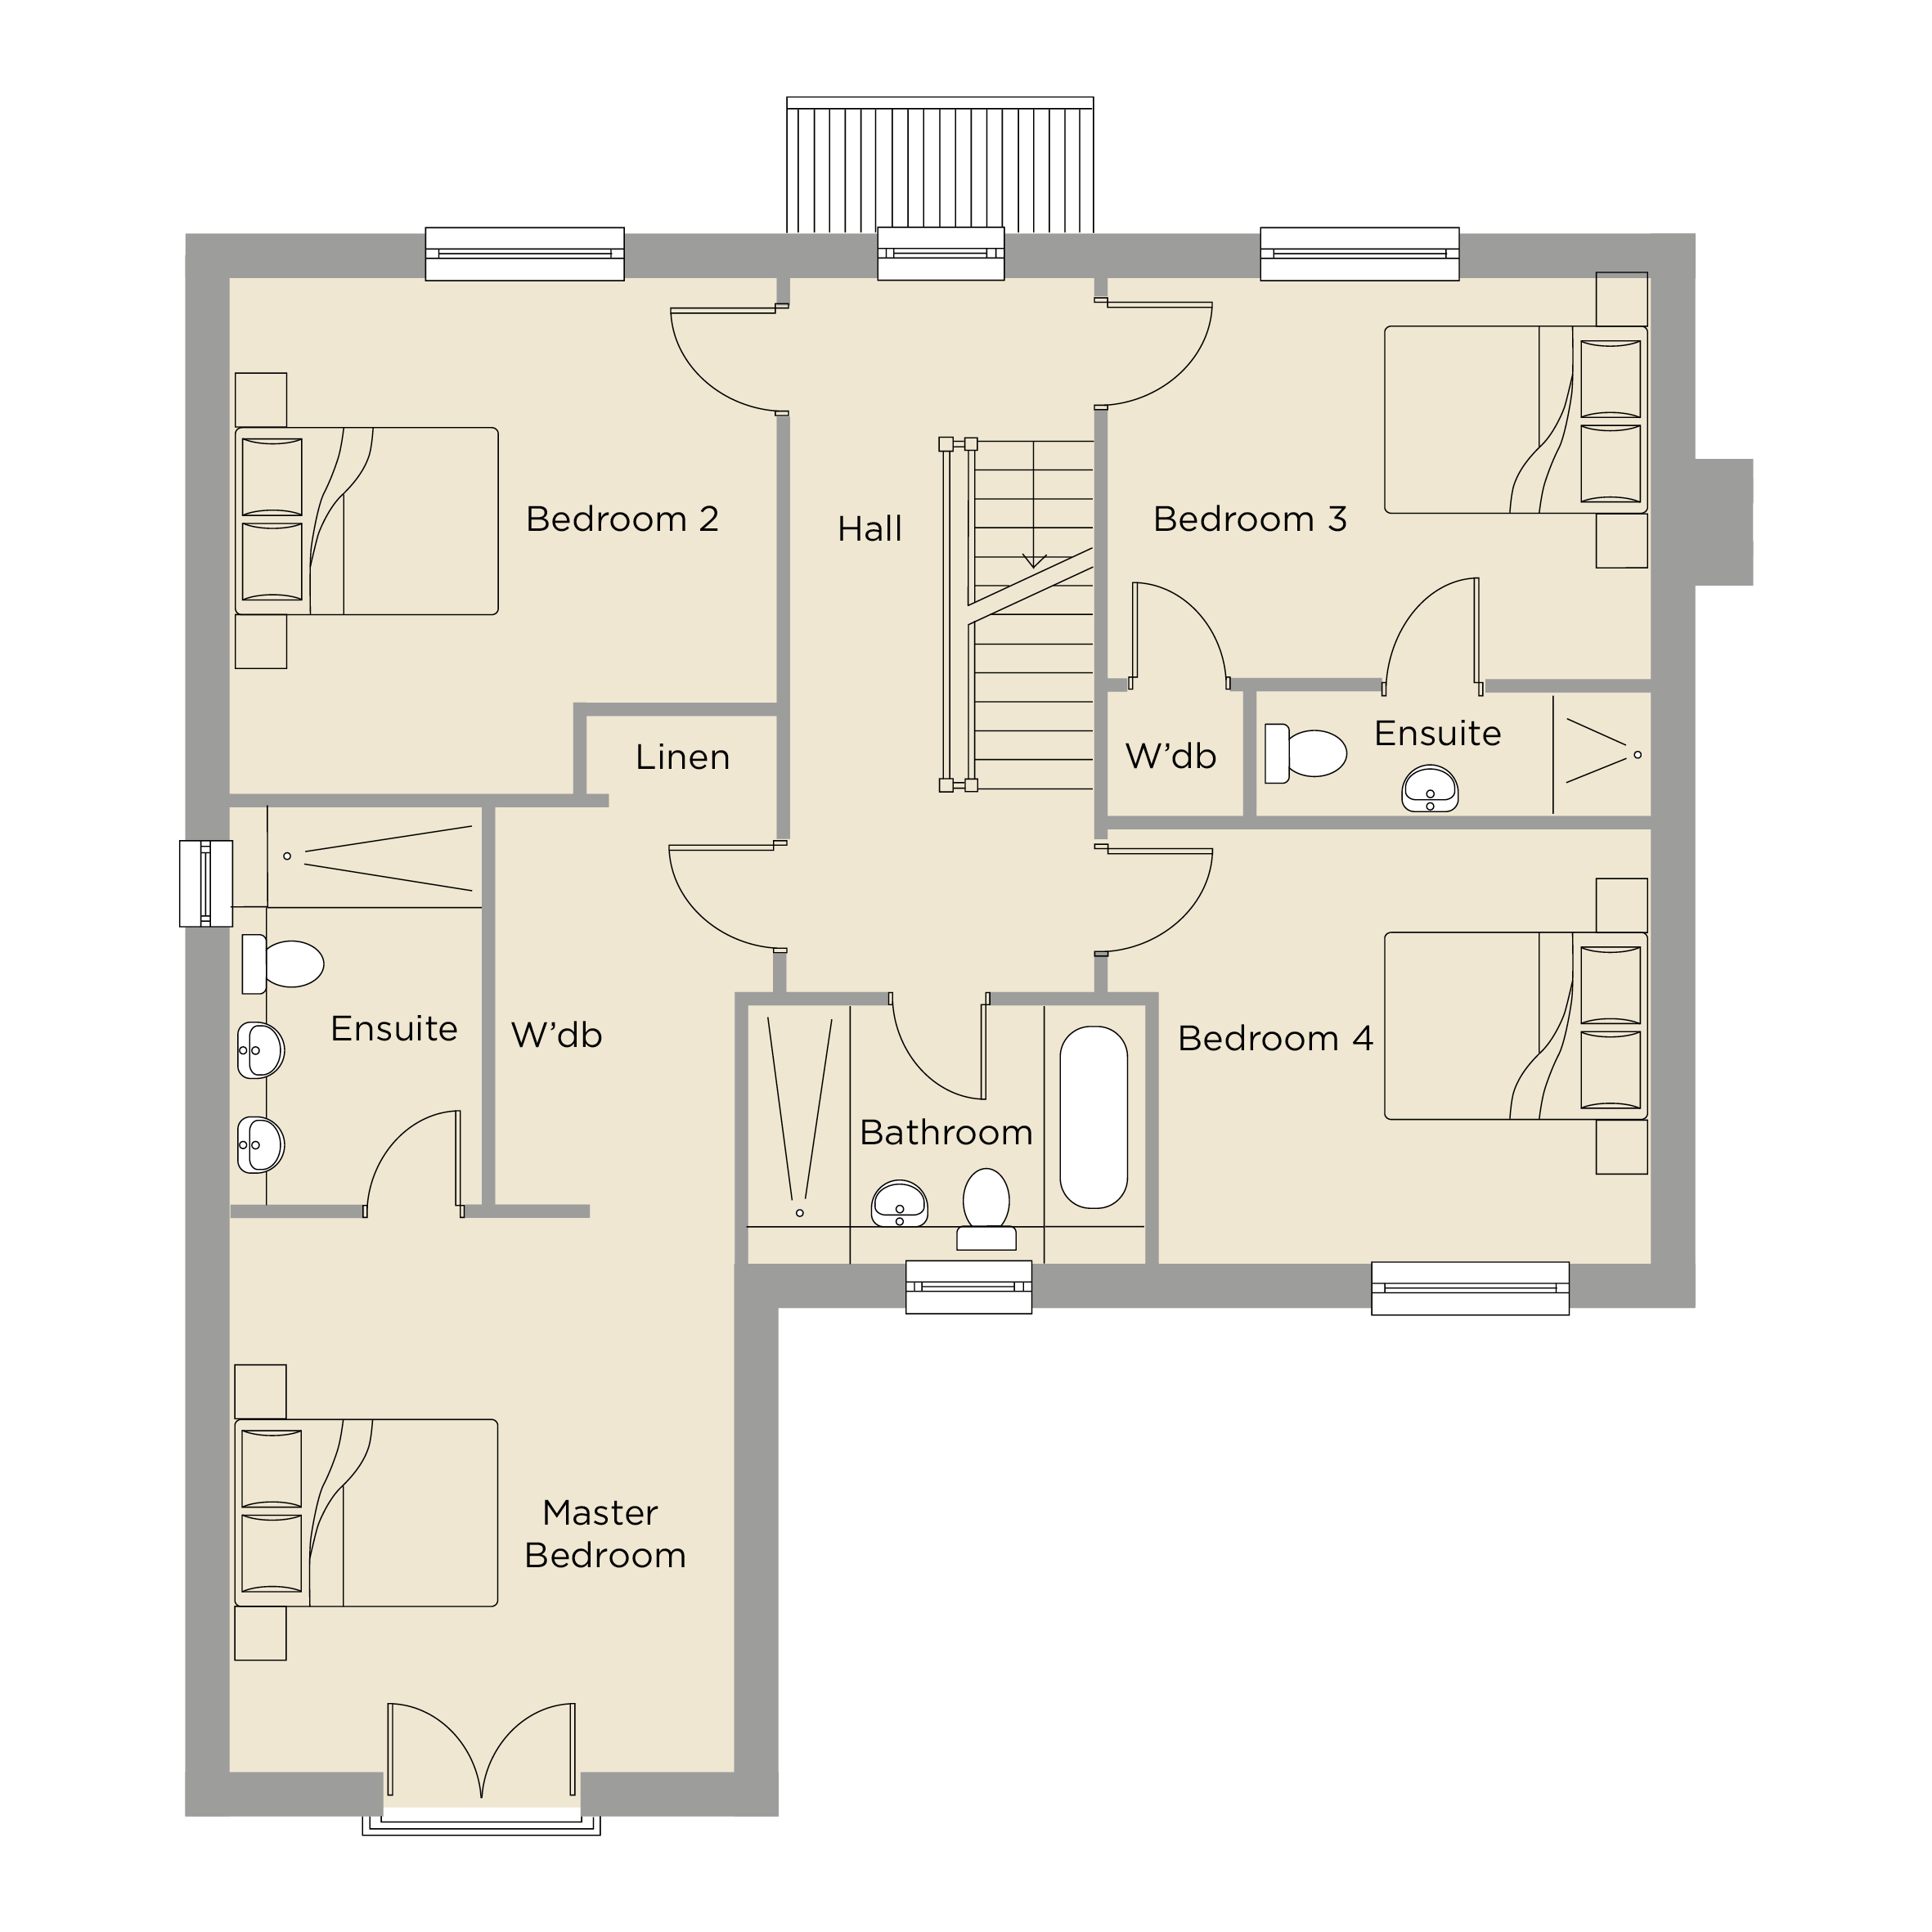 mulberry_vale_skipwith_floor_plans_7.png